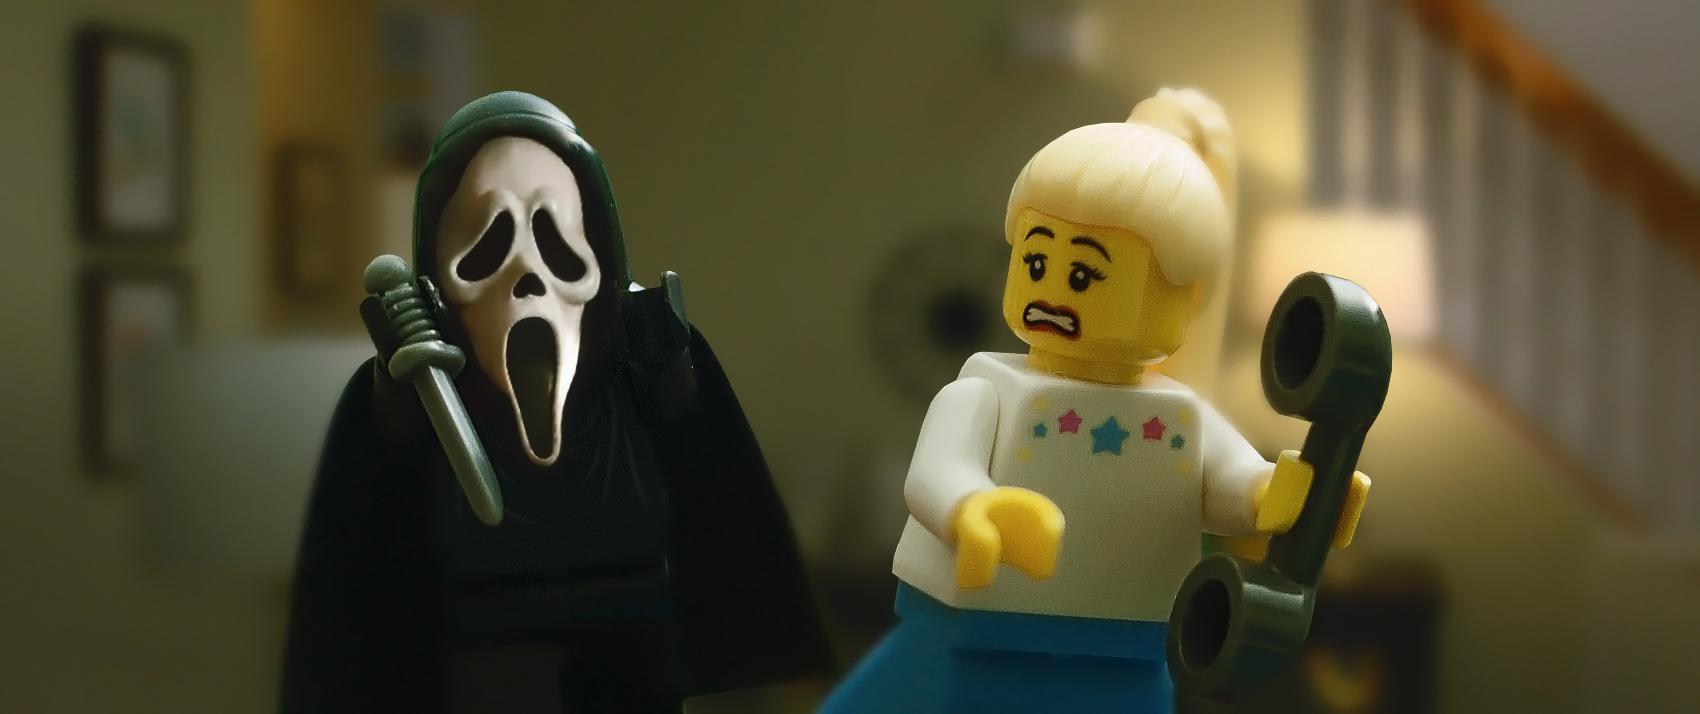 Scream' Antagonist Ghost Face Finally Comes To 'Dead By